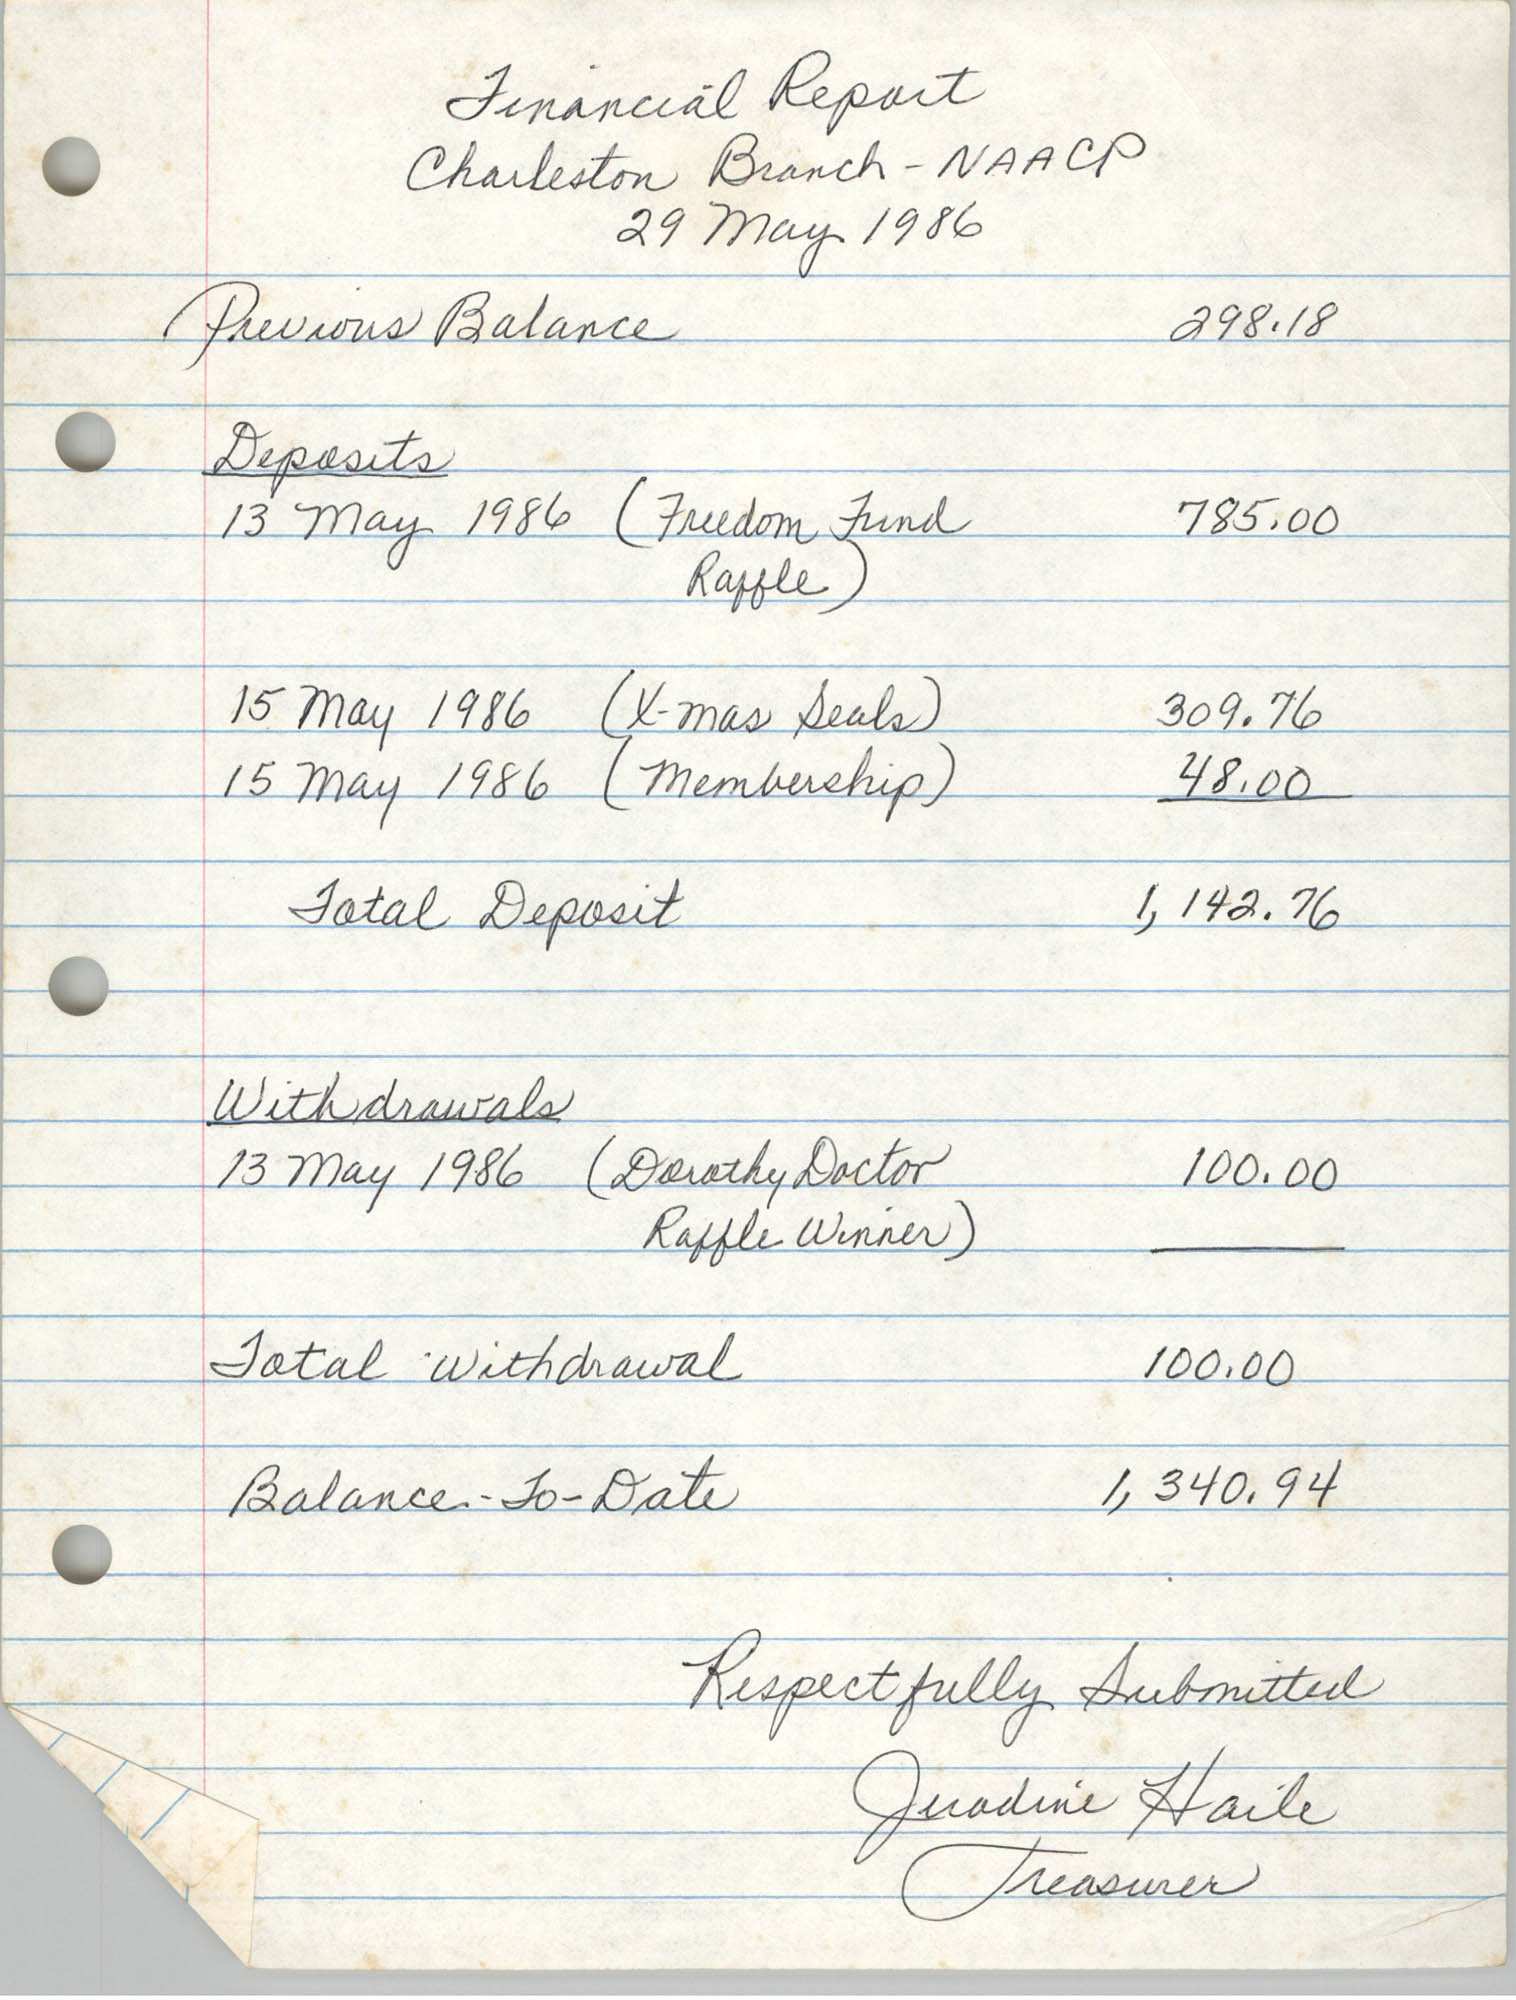 Charleston Branch of the NAACP Financial Report, May 29, 1986